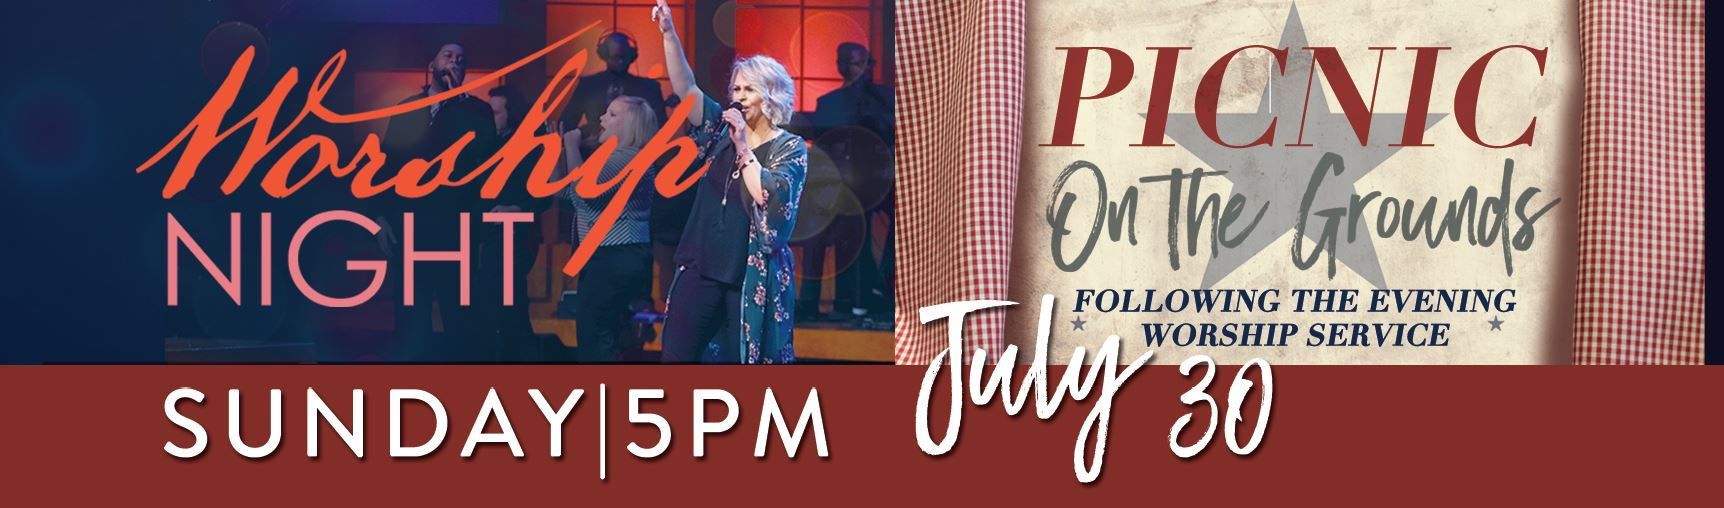 Worship Night | Sunday, July 30, 5pm | Picnic on the Grounds - Following the evening service